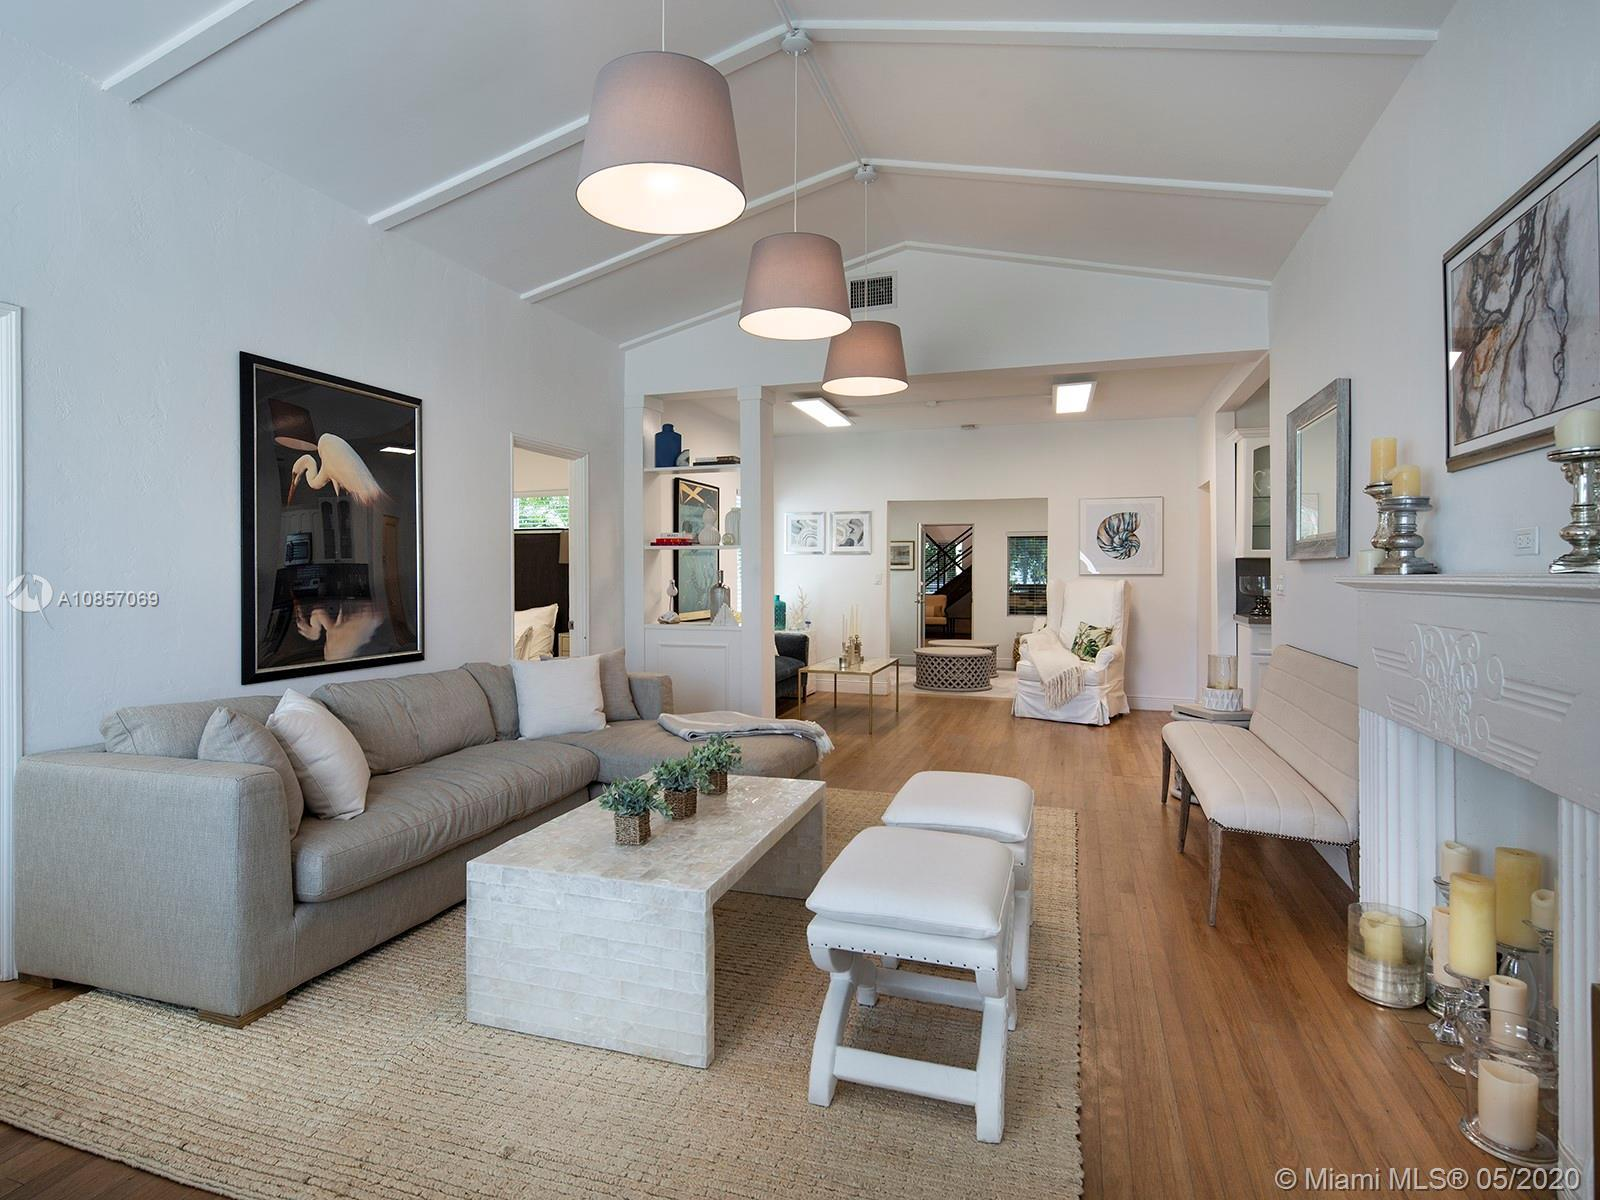 Step inside this sunny south beach home on Flamingo Way! Tastefully renovated, this single family ho